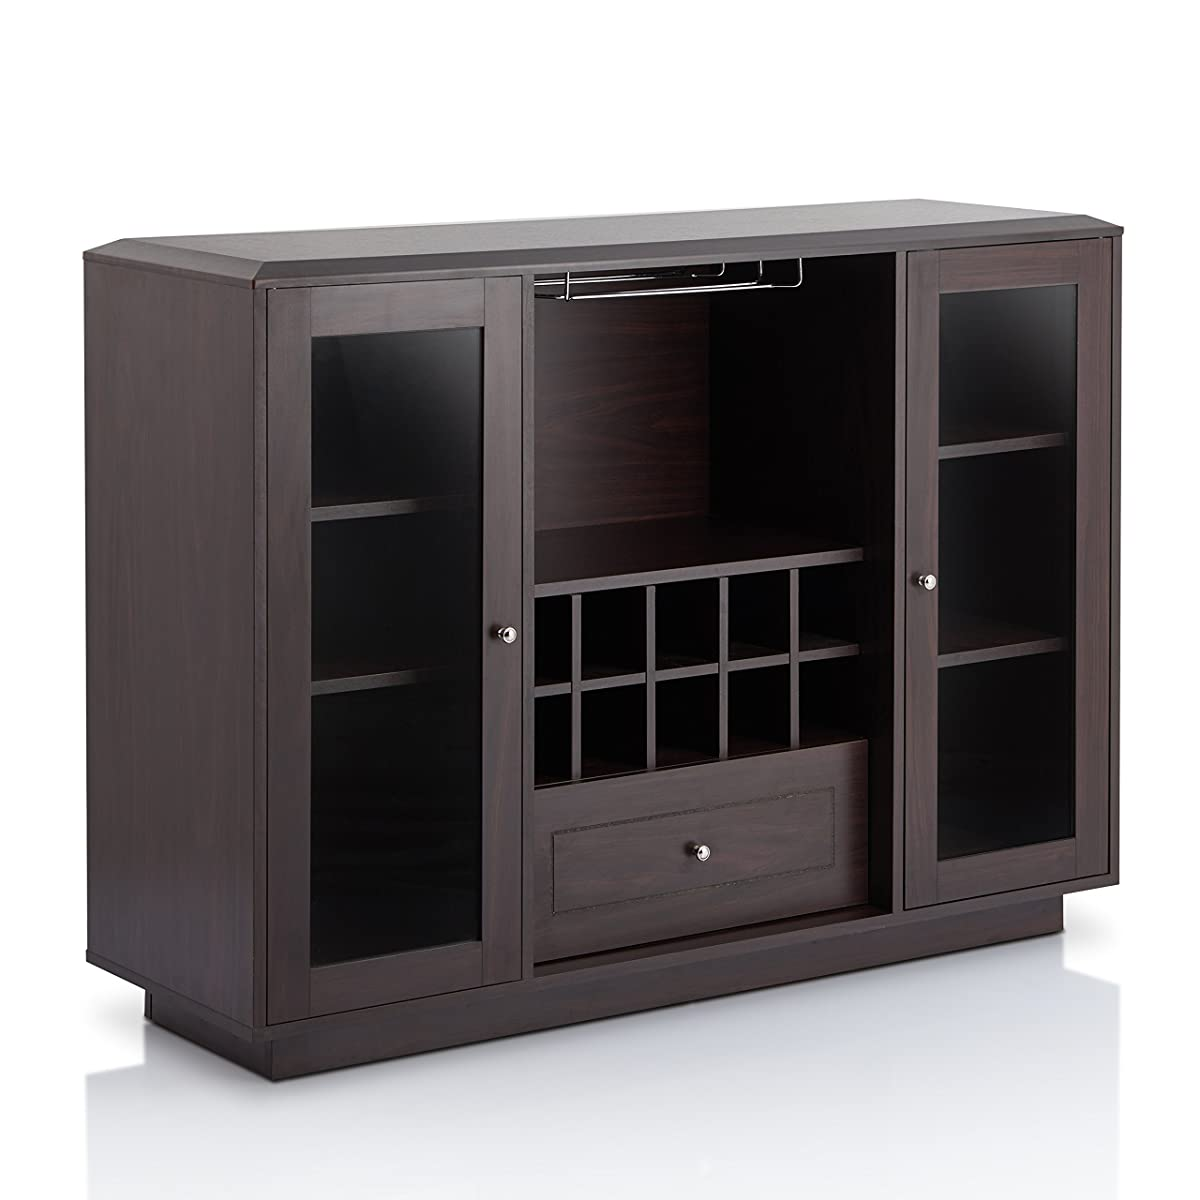 ioHOMES Olympia Multi Storage Dining Buffet, Espresso